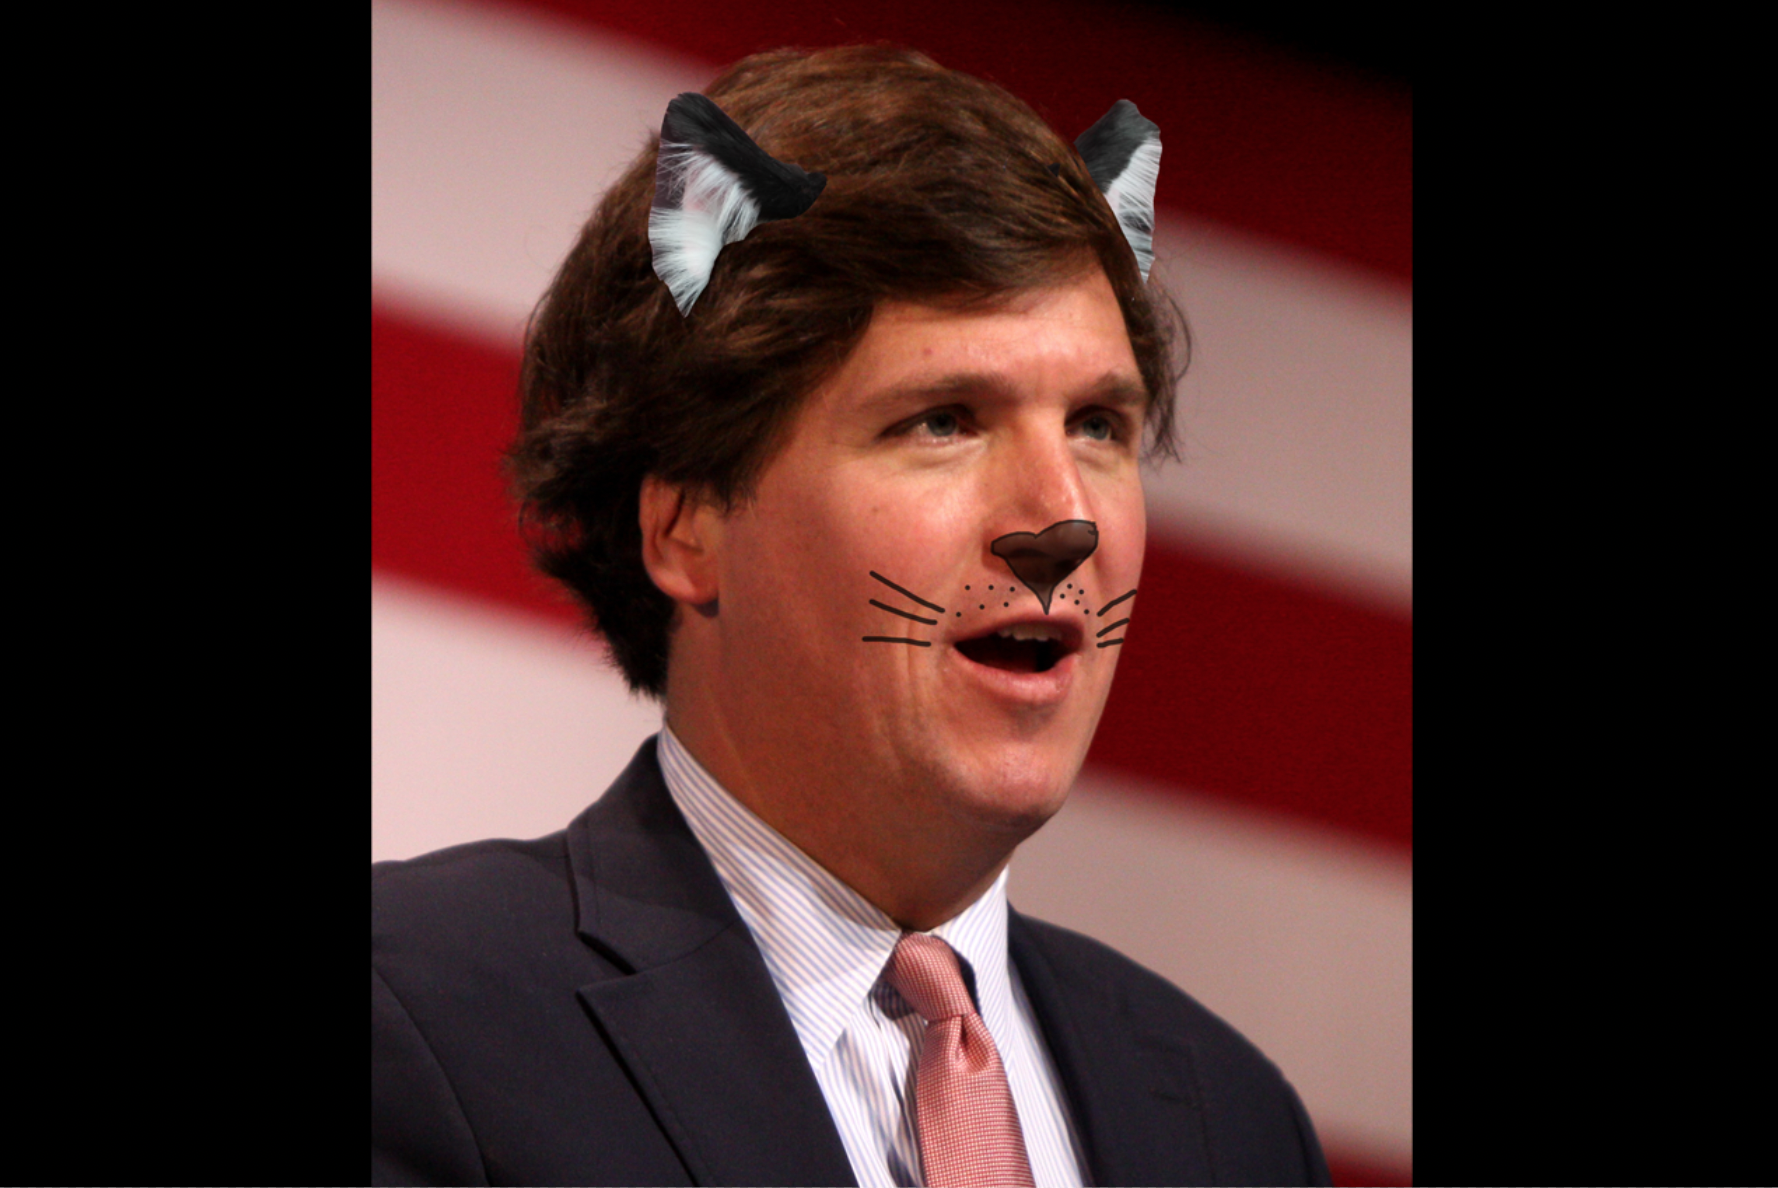 Dressed As A Cat, Tucker Carlson Claims Biden Declawed New White House Pet In 'Thiny-Veiled Attack On 2nd Amendment'